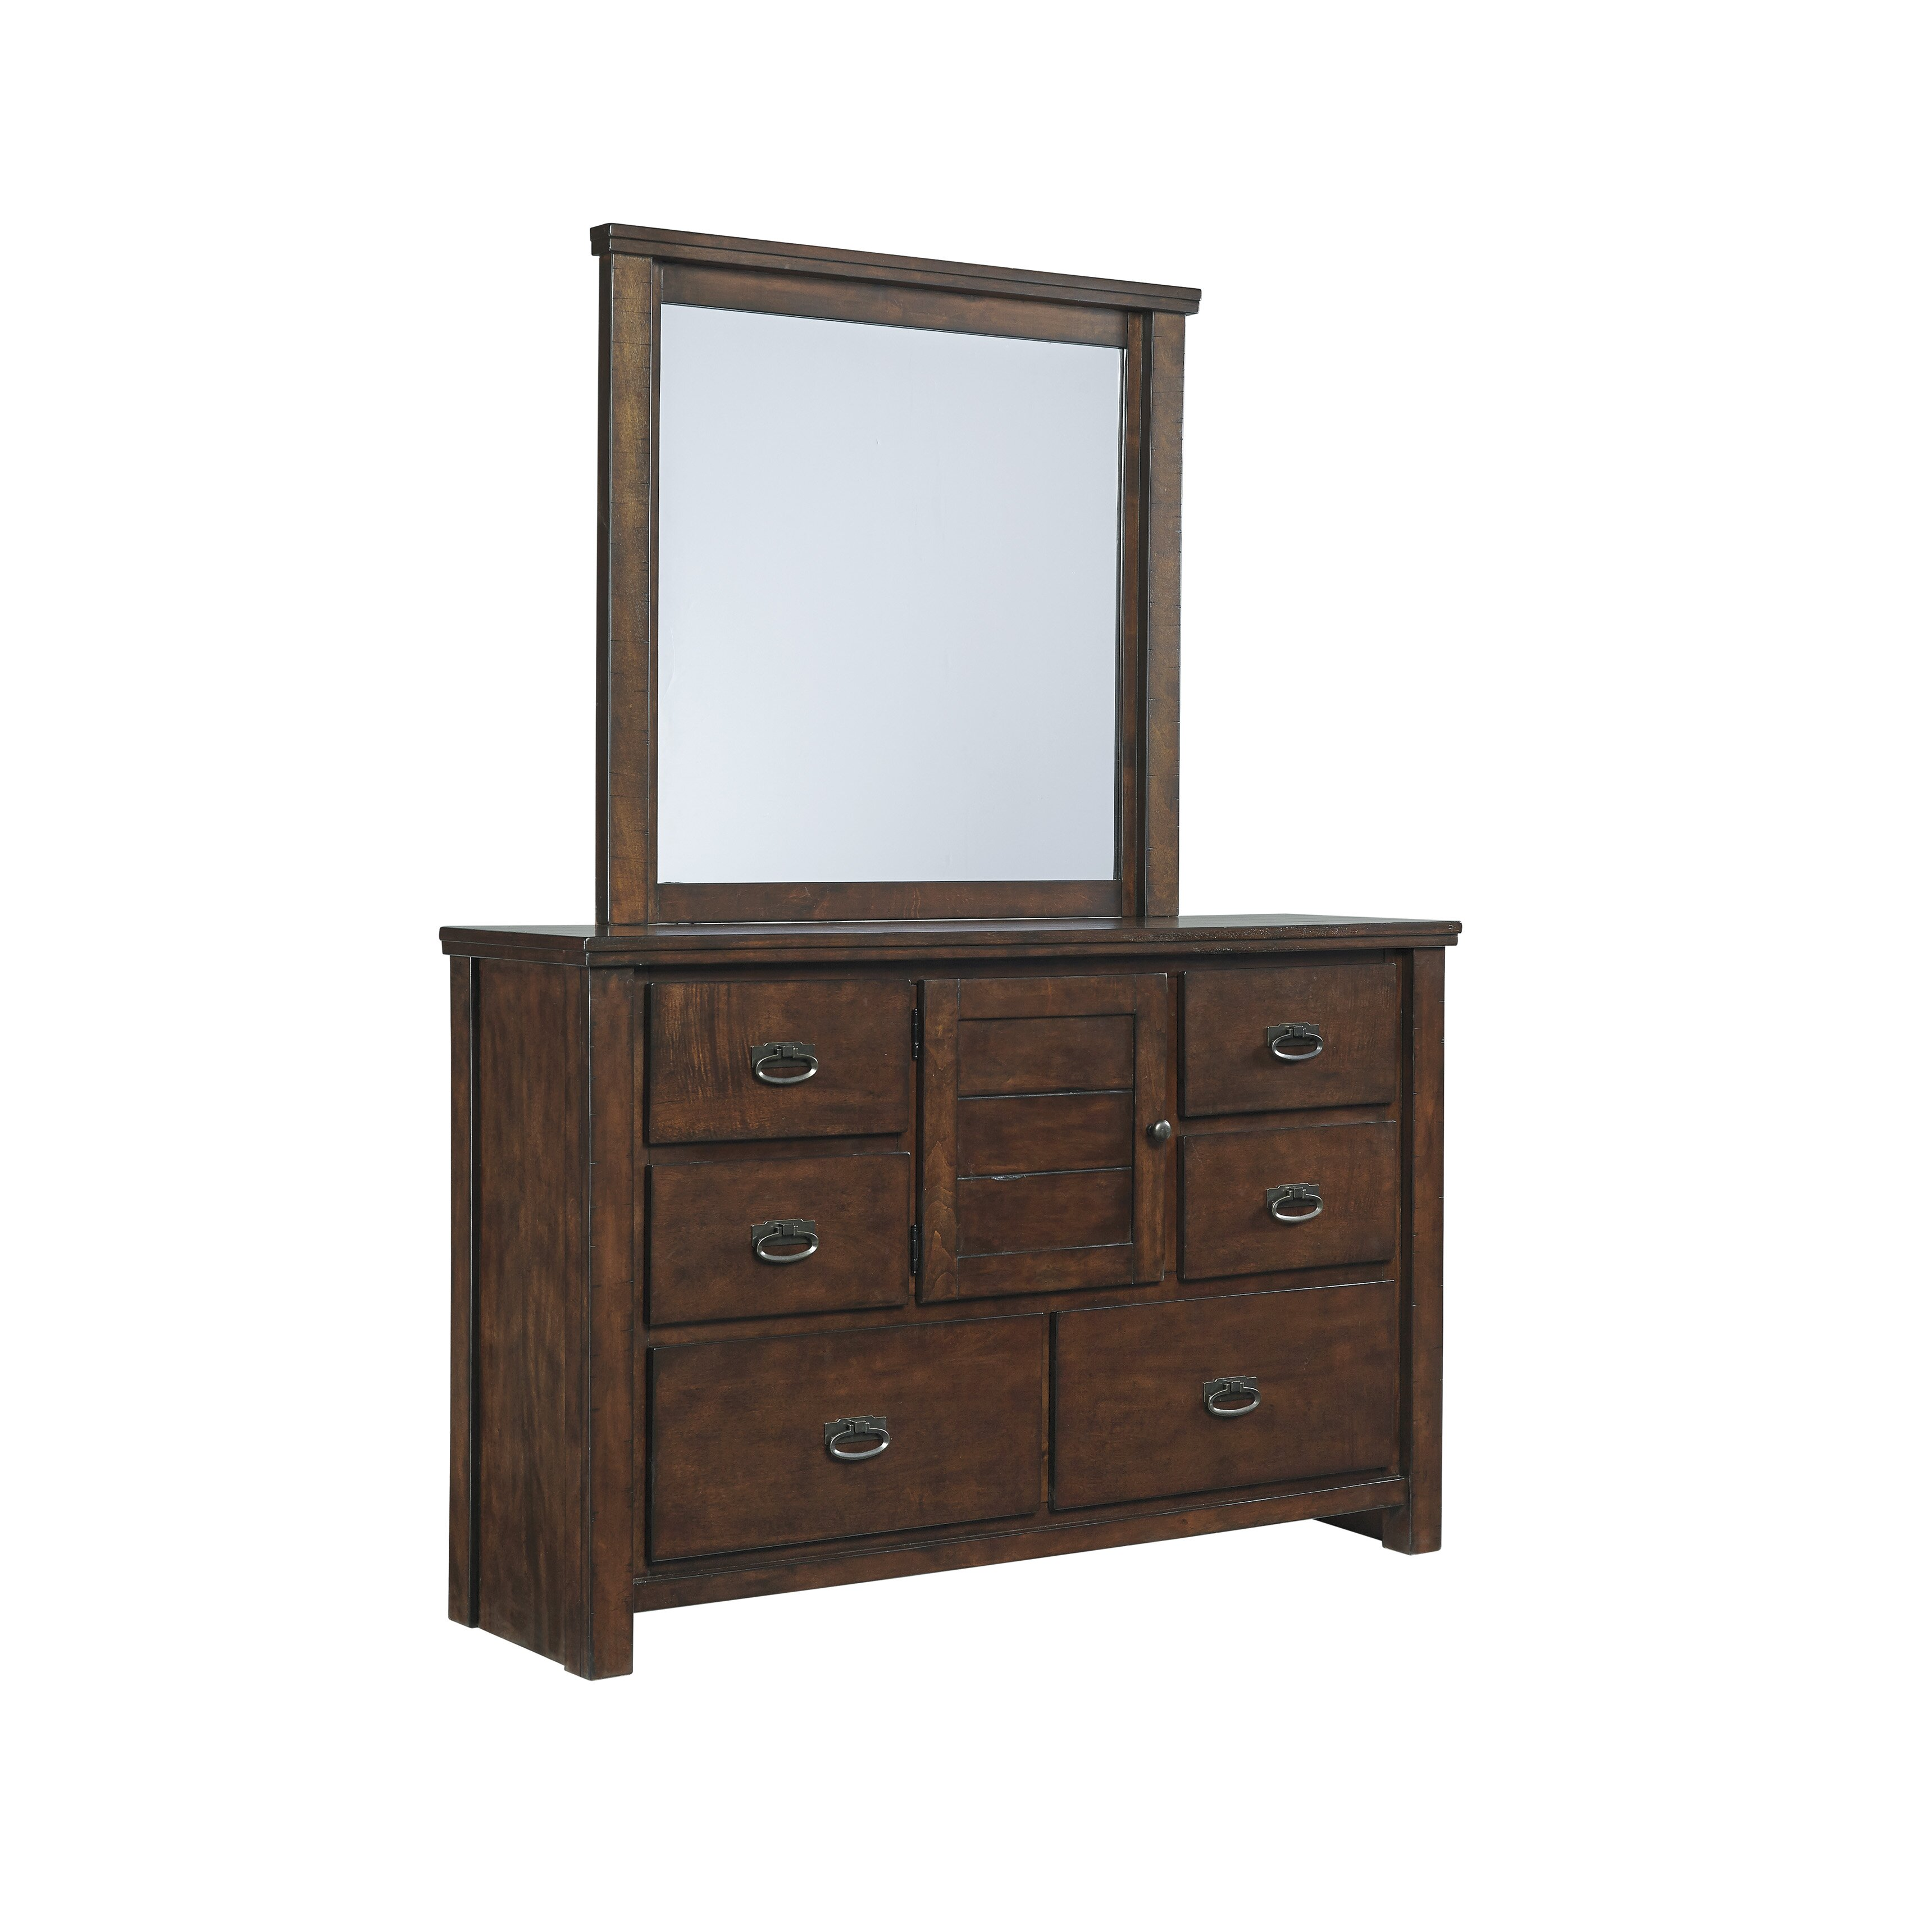 Signature design by ashley ladiville 6 drawer dresser for 1 door 6 drawer chest